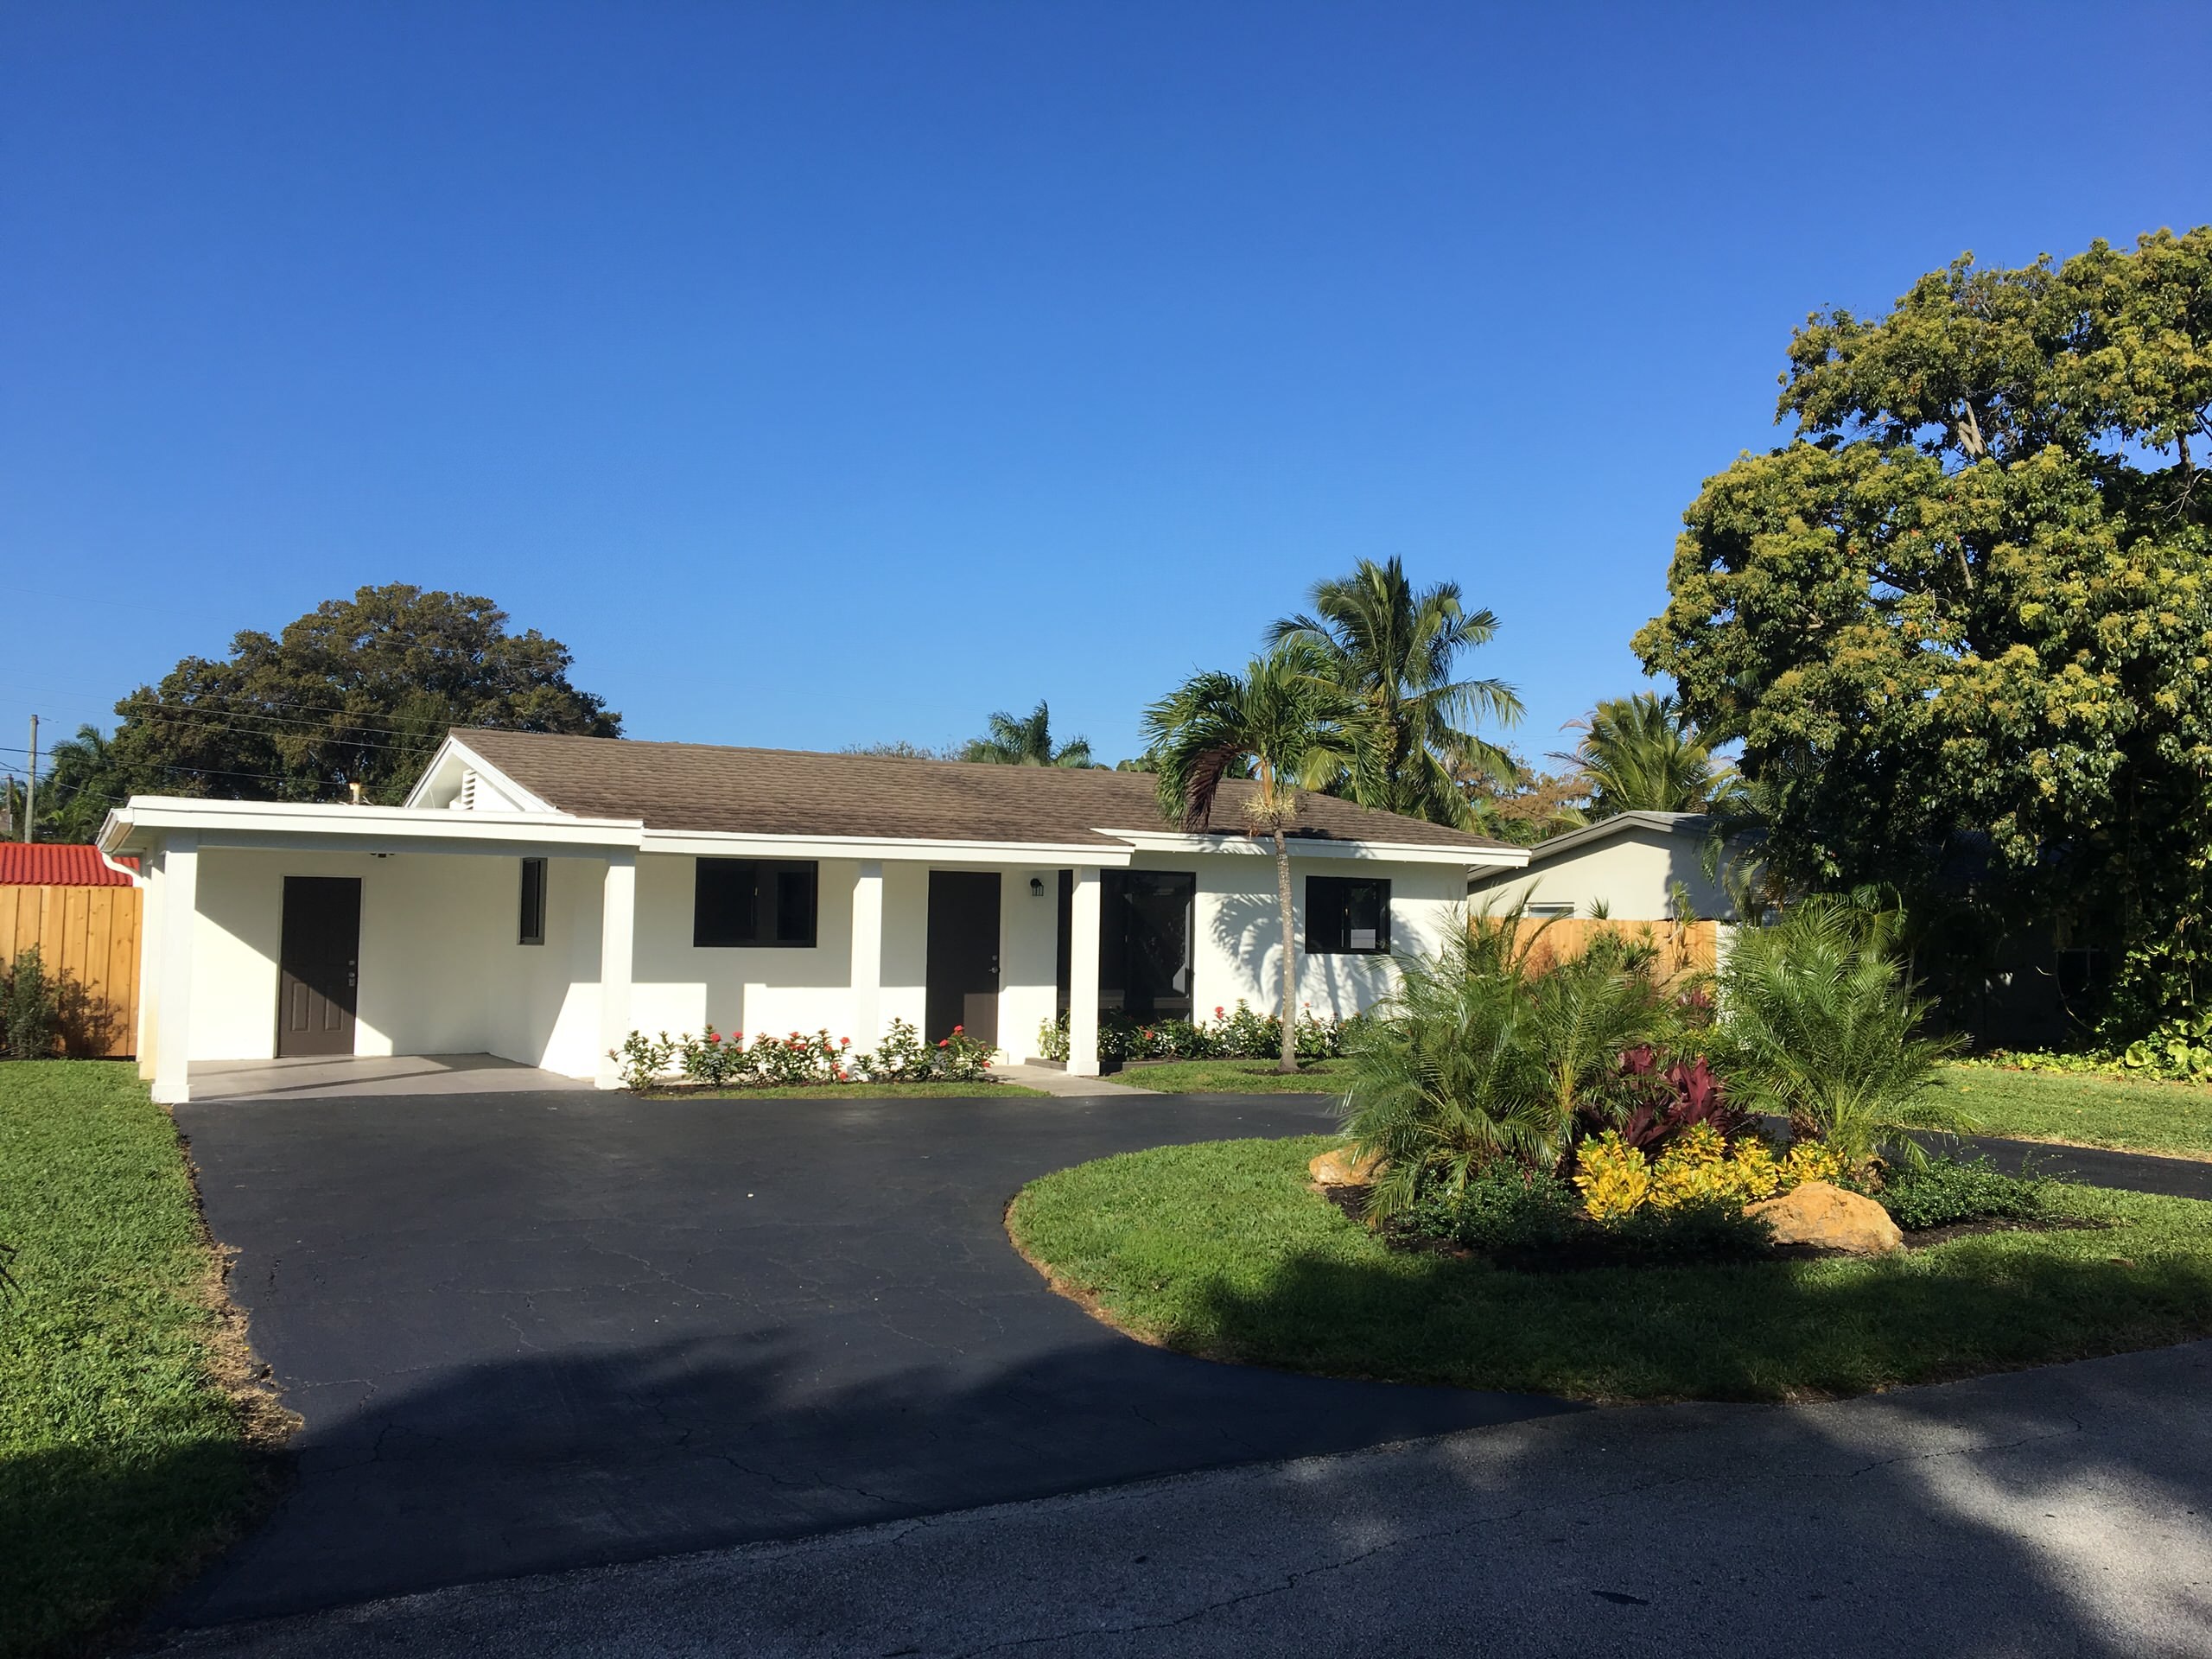 Midcentury Modern Revival - Investment Project